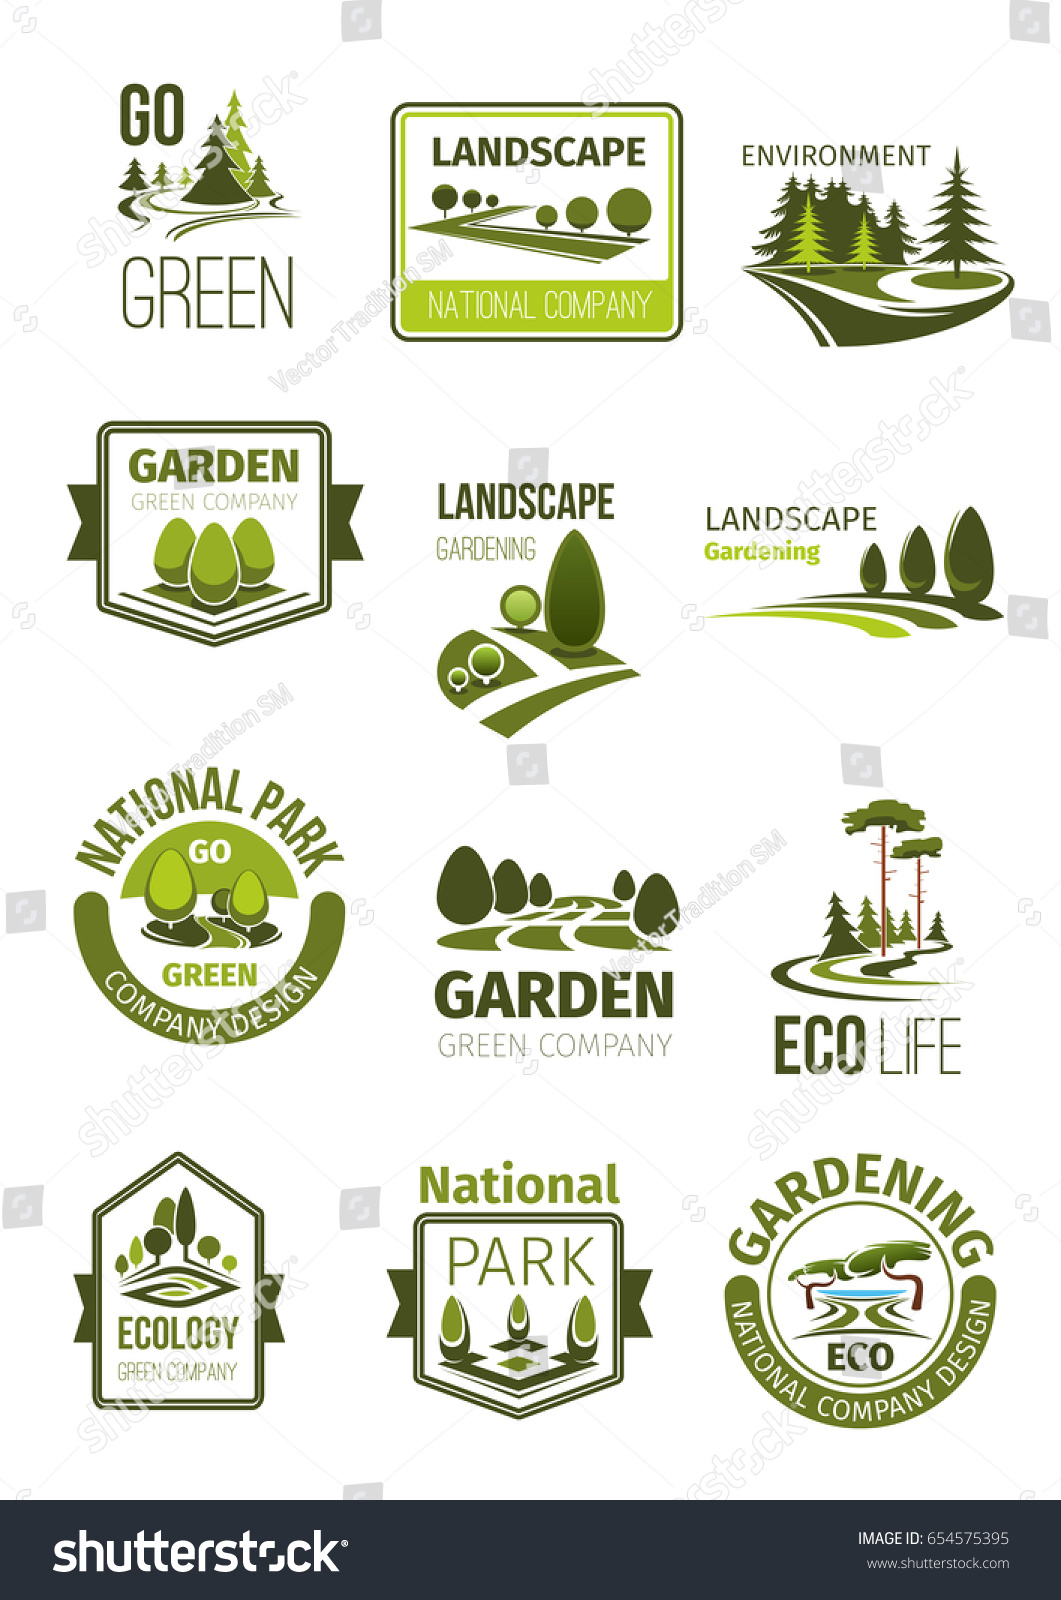 Garden green landscape design company icons stock vector for Green landscape design